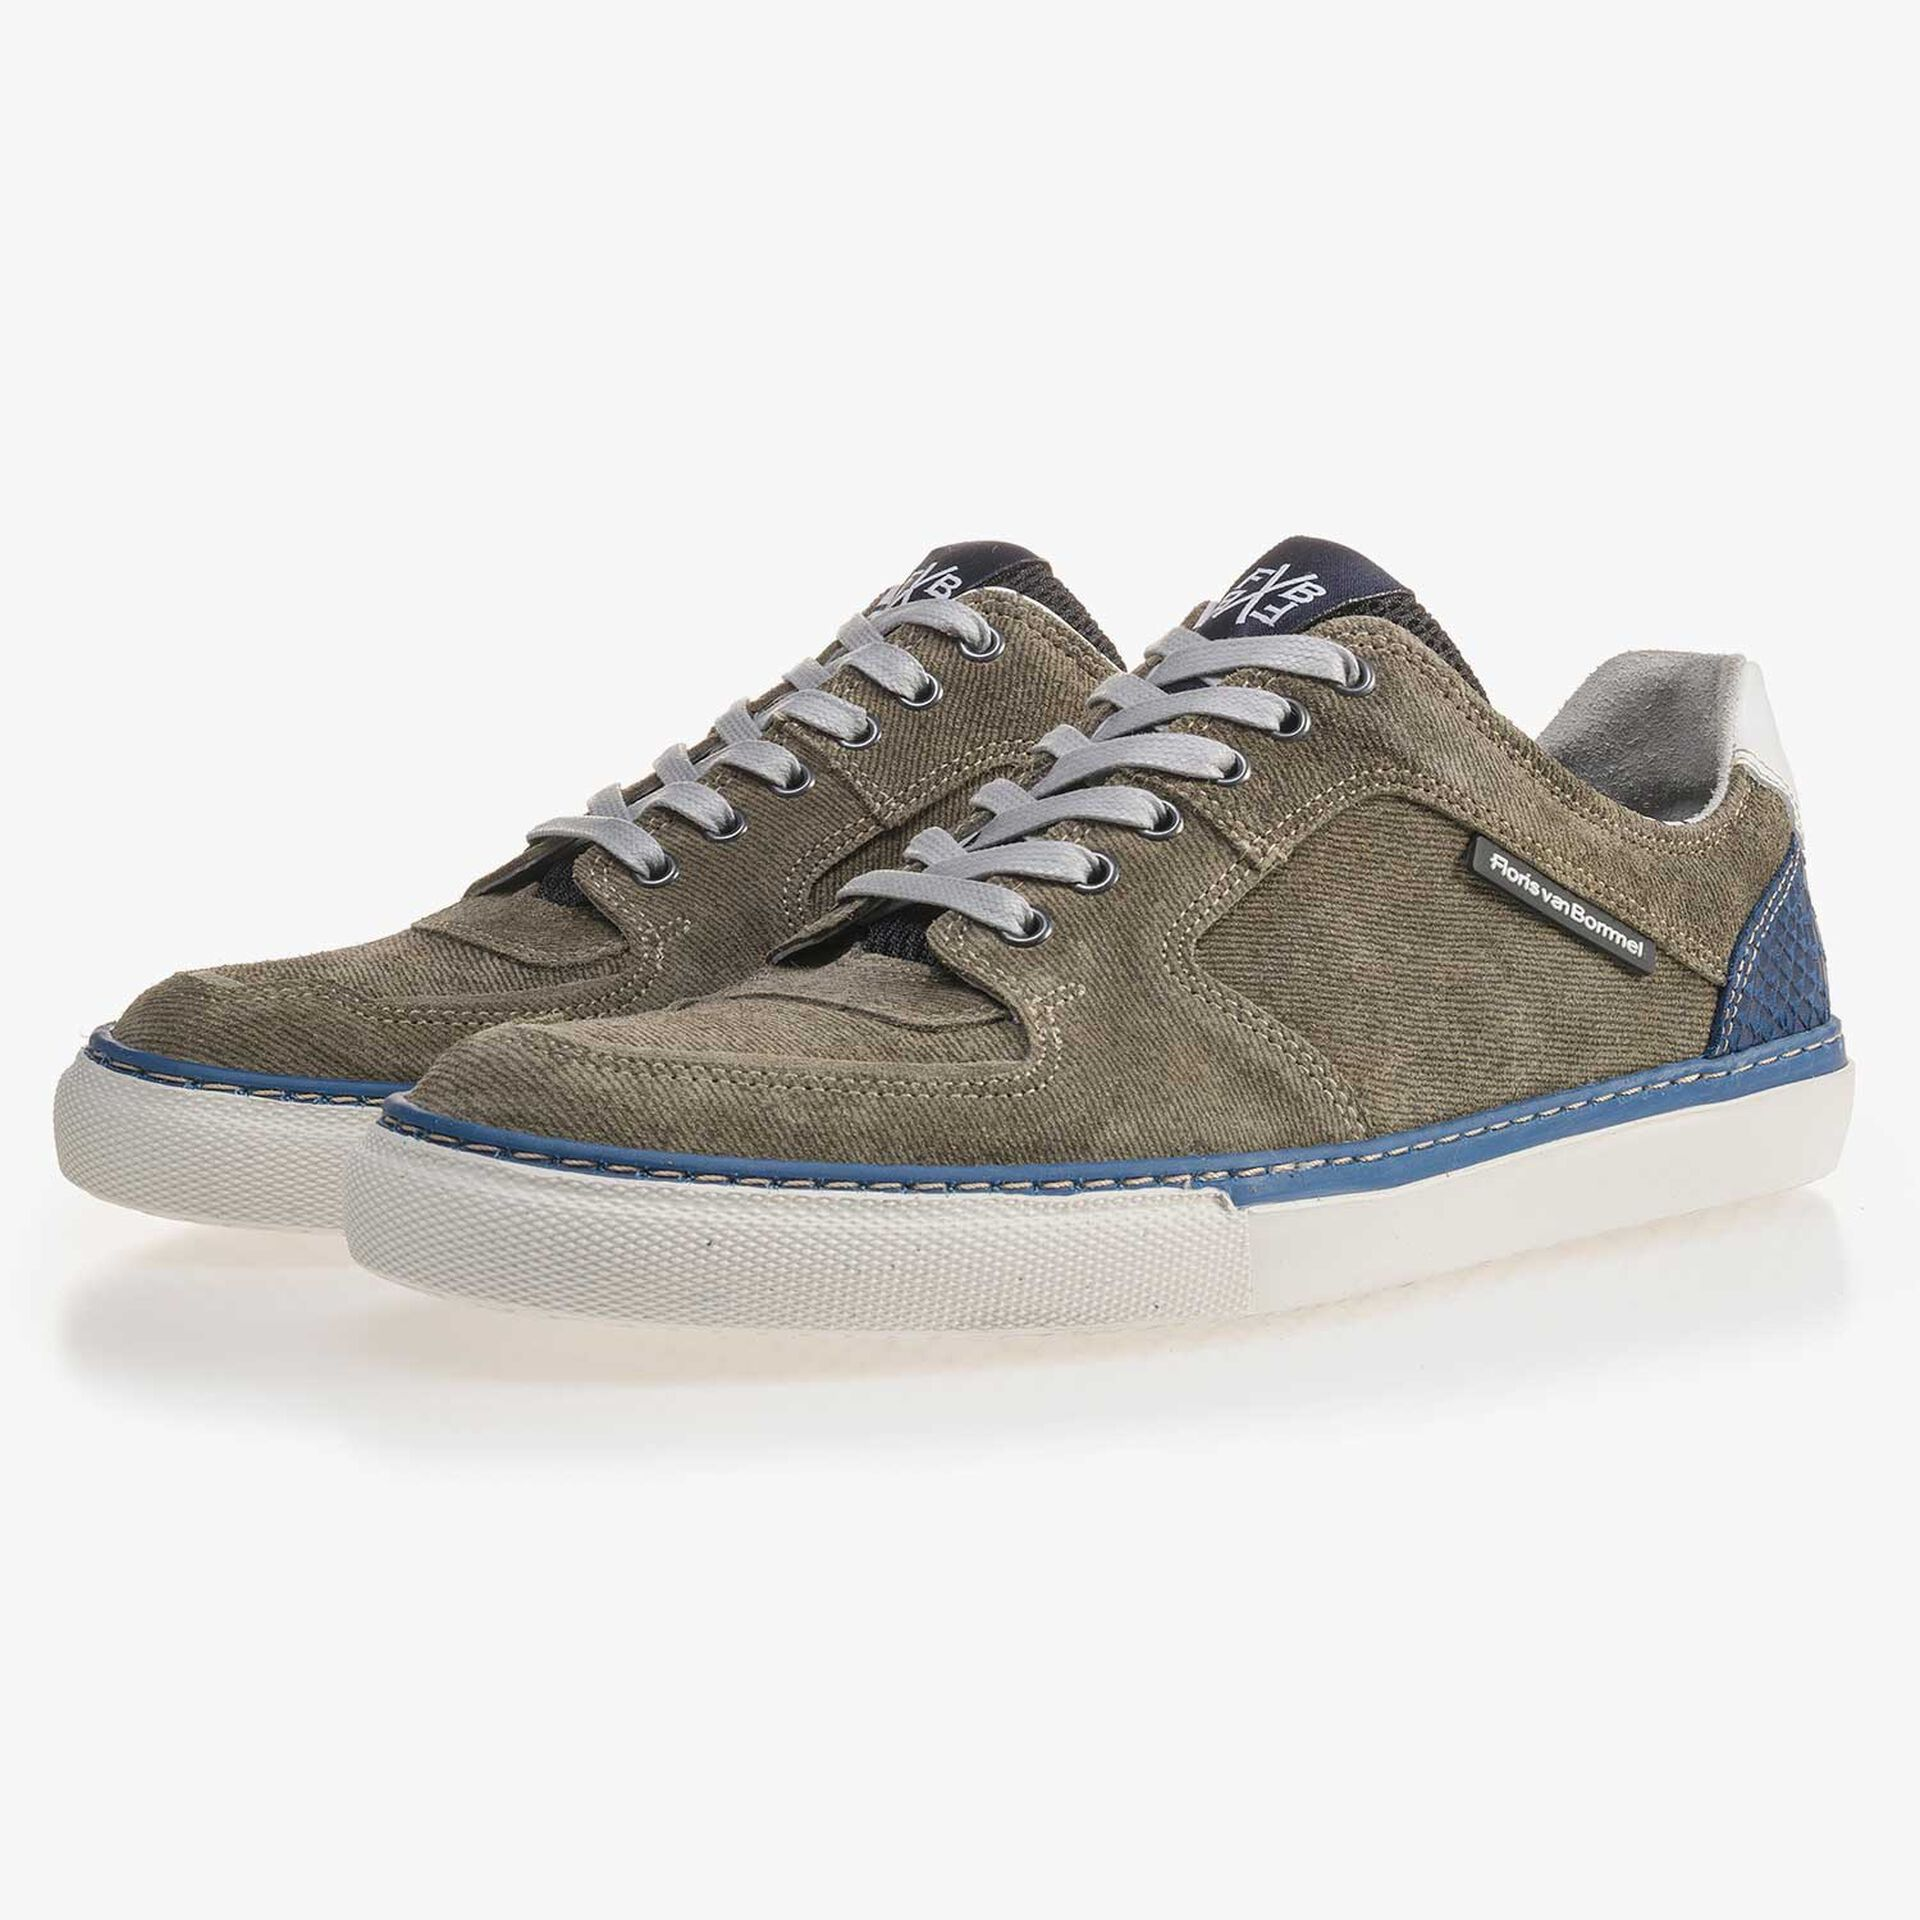 Olive green patterned suede leather sneaker